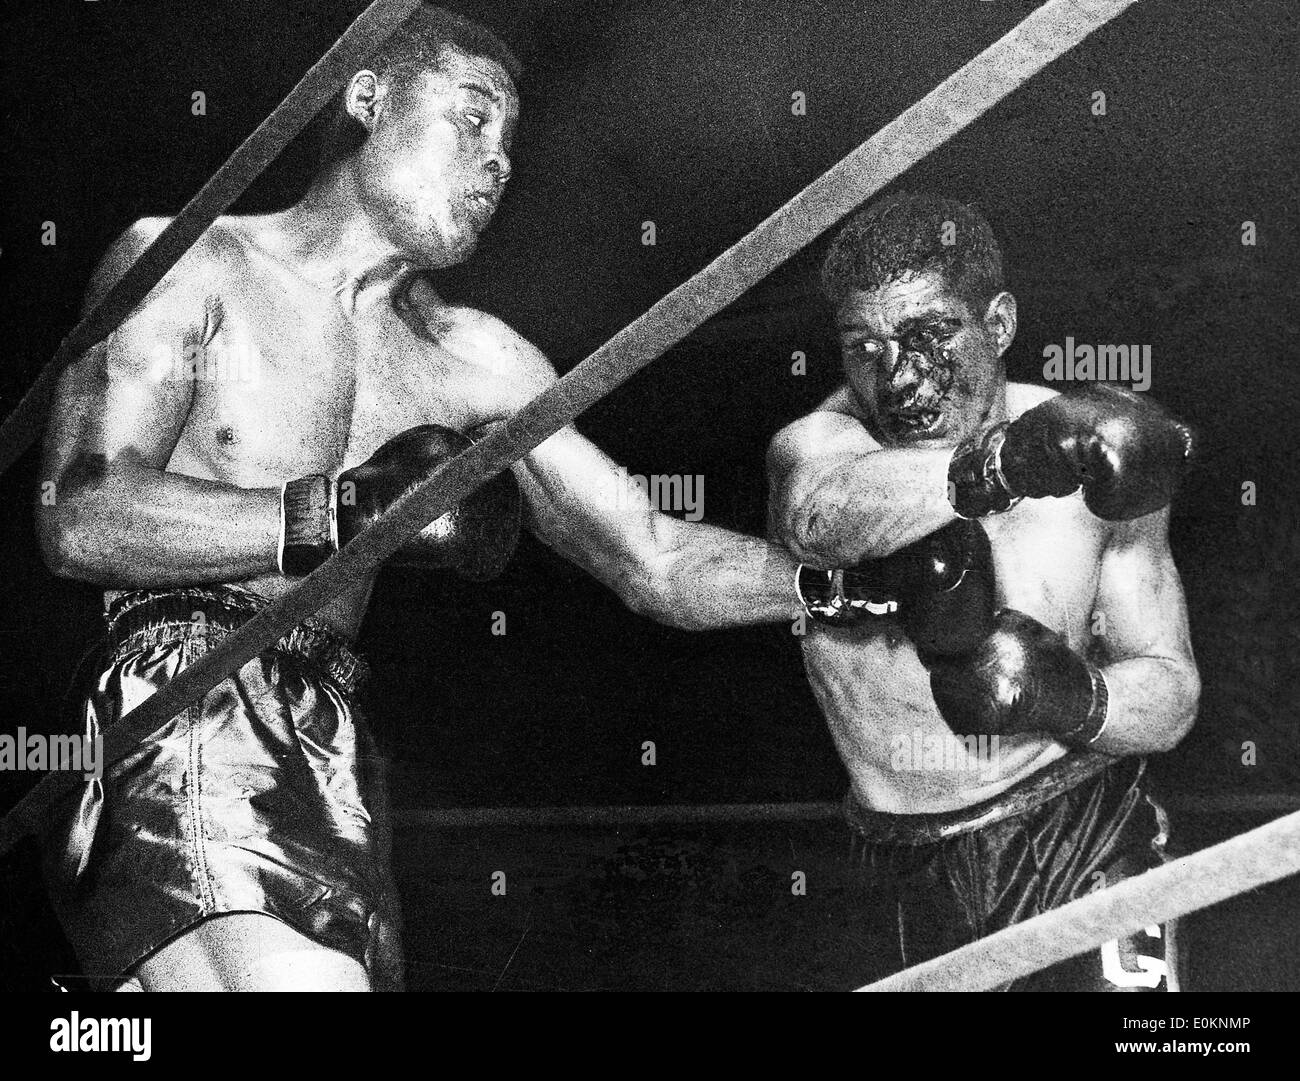 Joe Louis fighting Arturo Godoy for the second time for the Heavyweight Championship - Stock Image